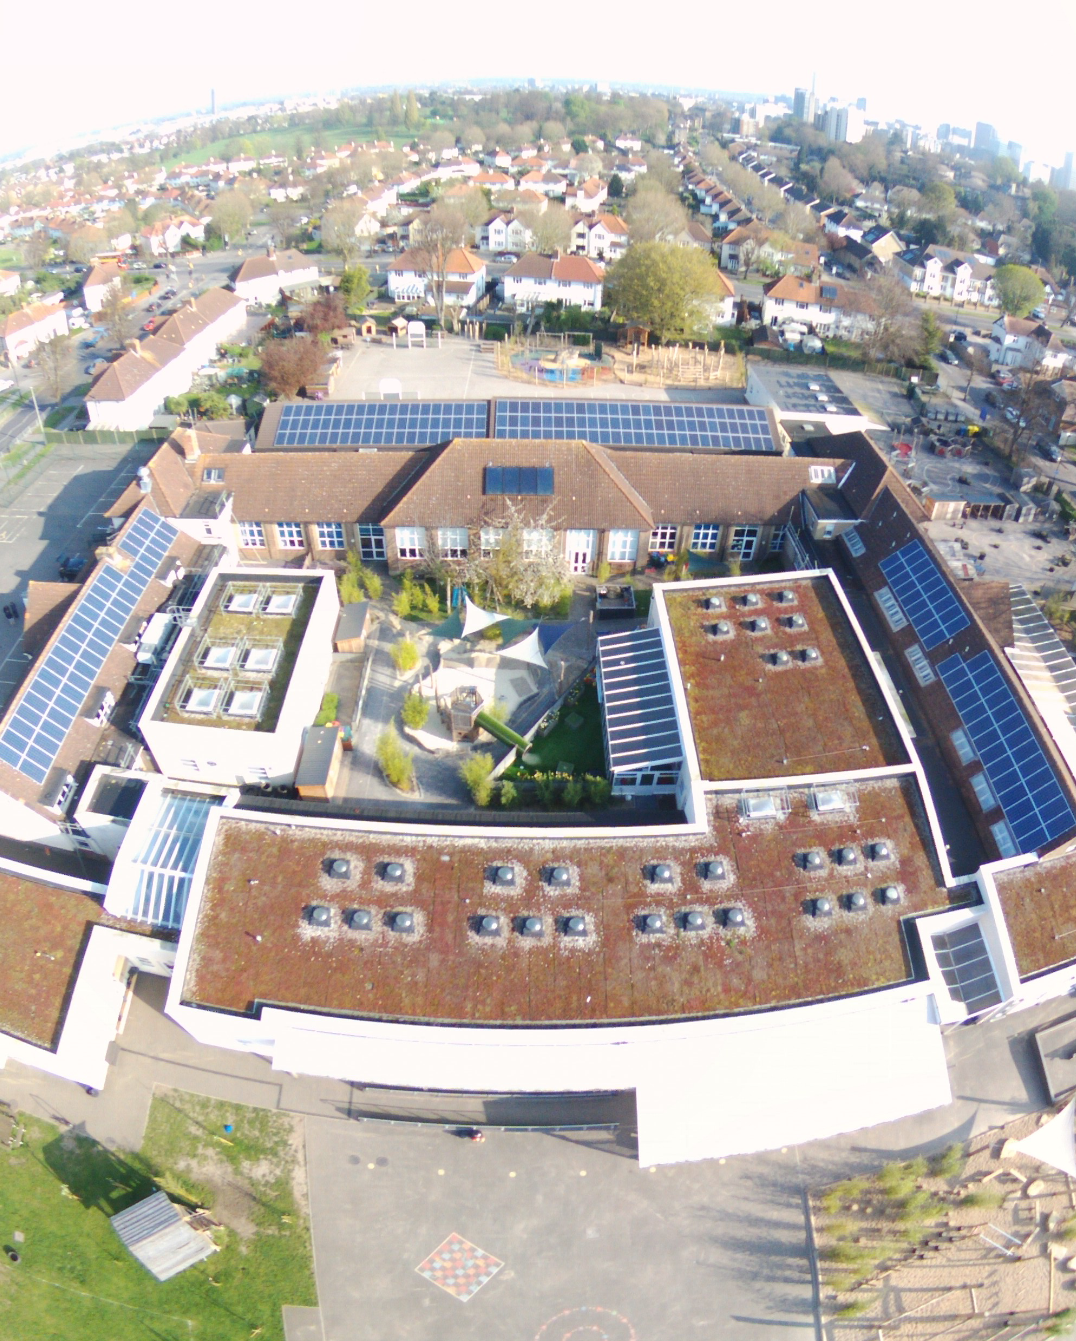 View of the new Solar PV installation from a Drone